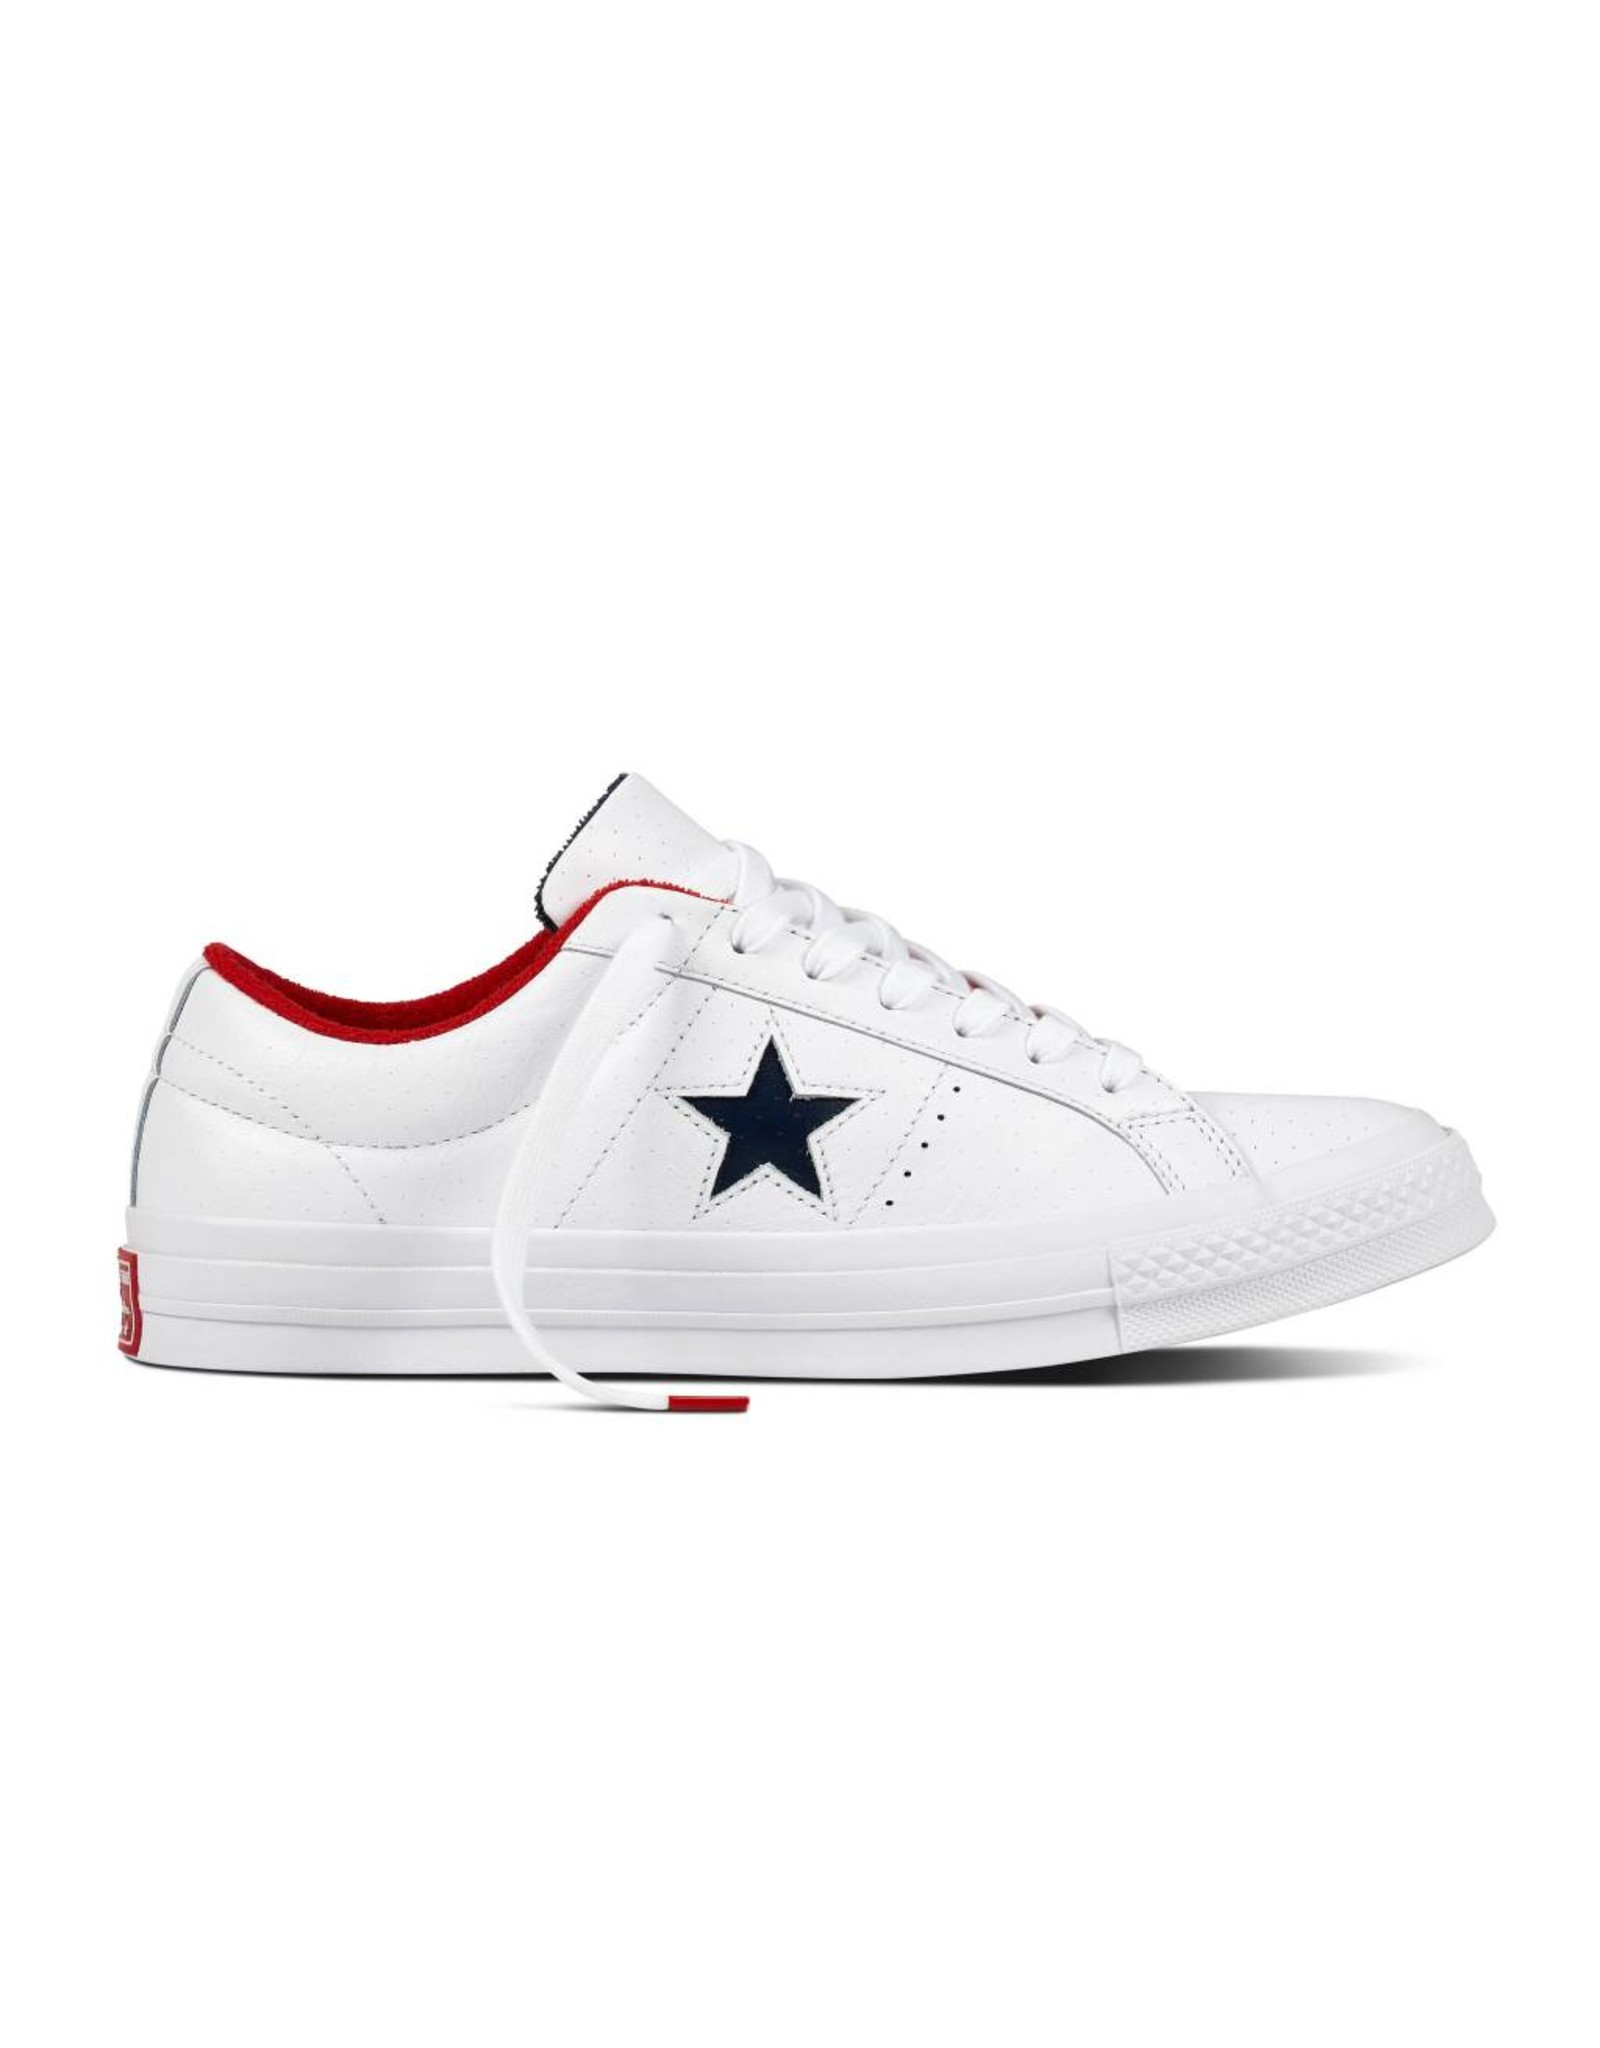 CONVERSE ONE STAR OX CUIR WHITE/ATHLETIC NAVY CC887AN-160555C